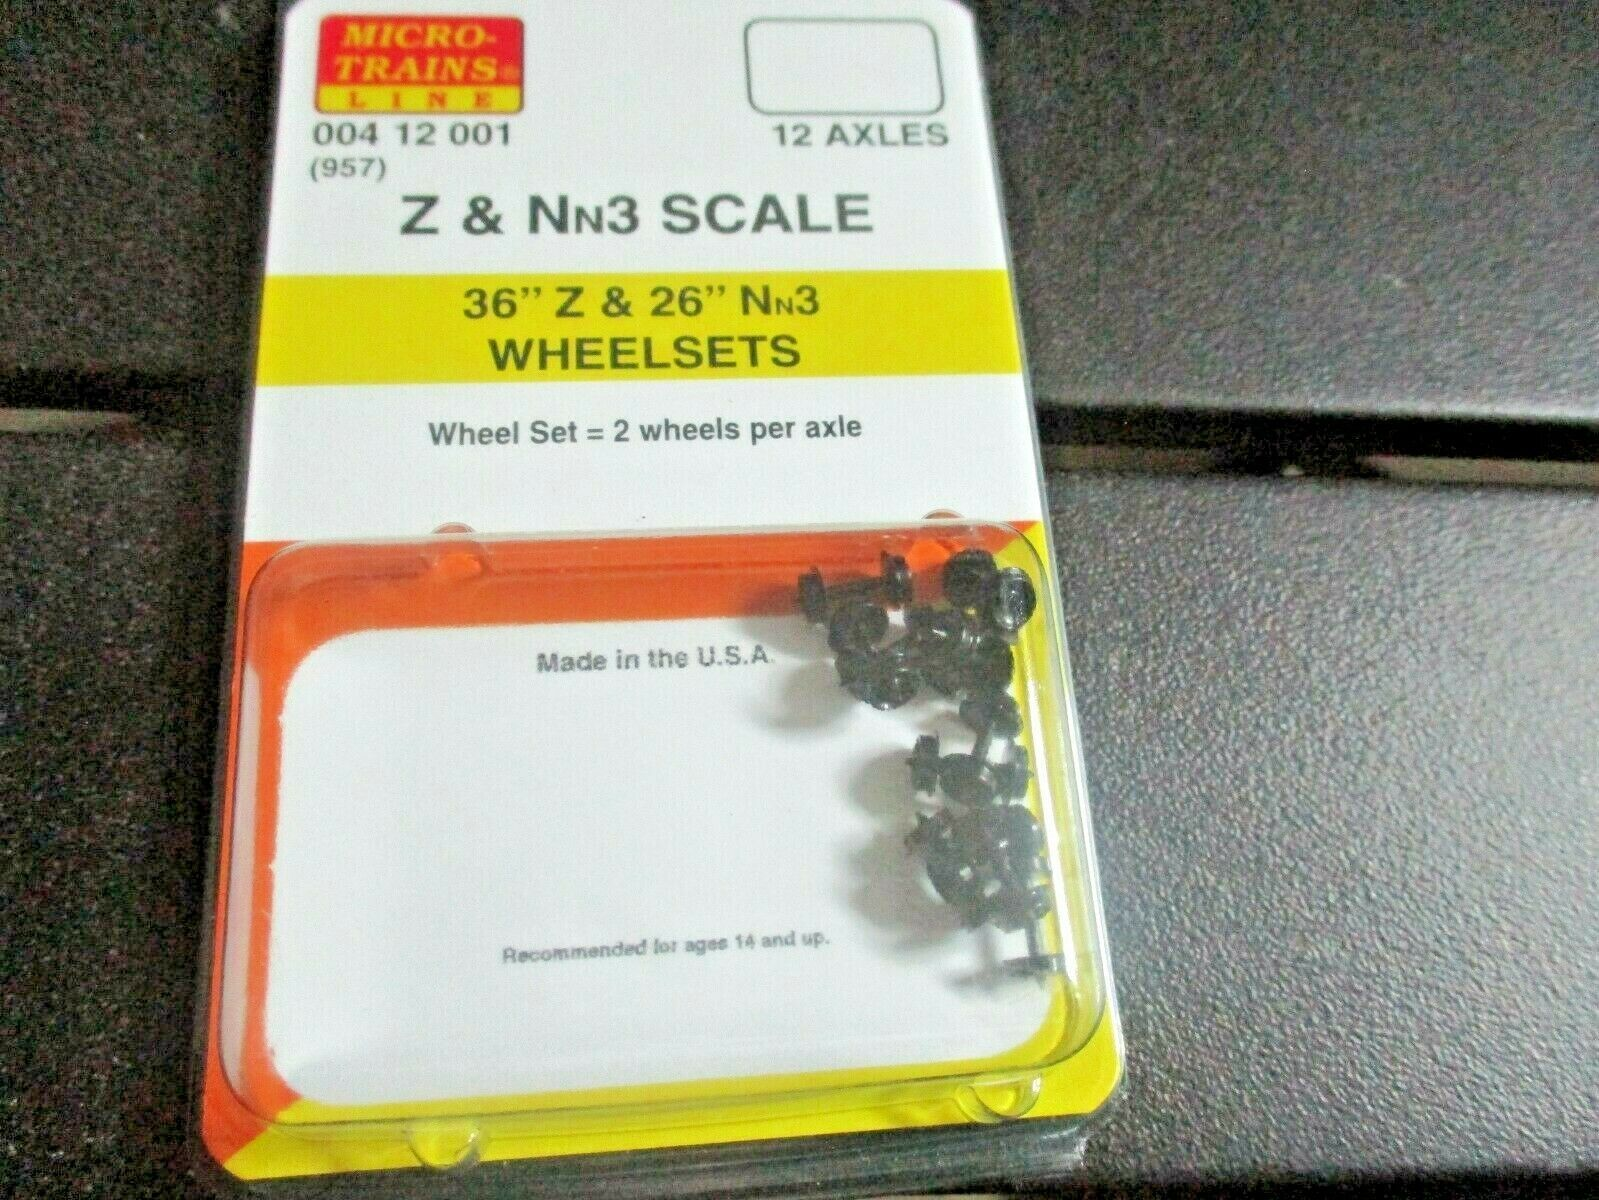 """Micro-Trains Stock # 00400412001 (957) 36"""" Z & 26"""" Nn3  Wheelsets 12 Axles Pack"""